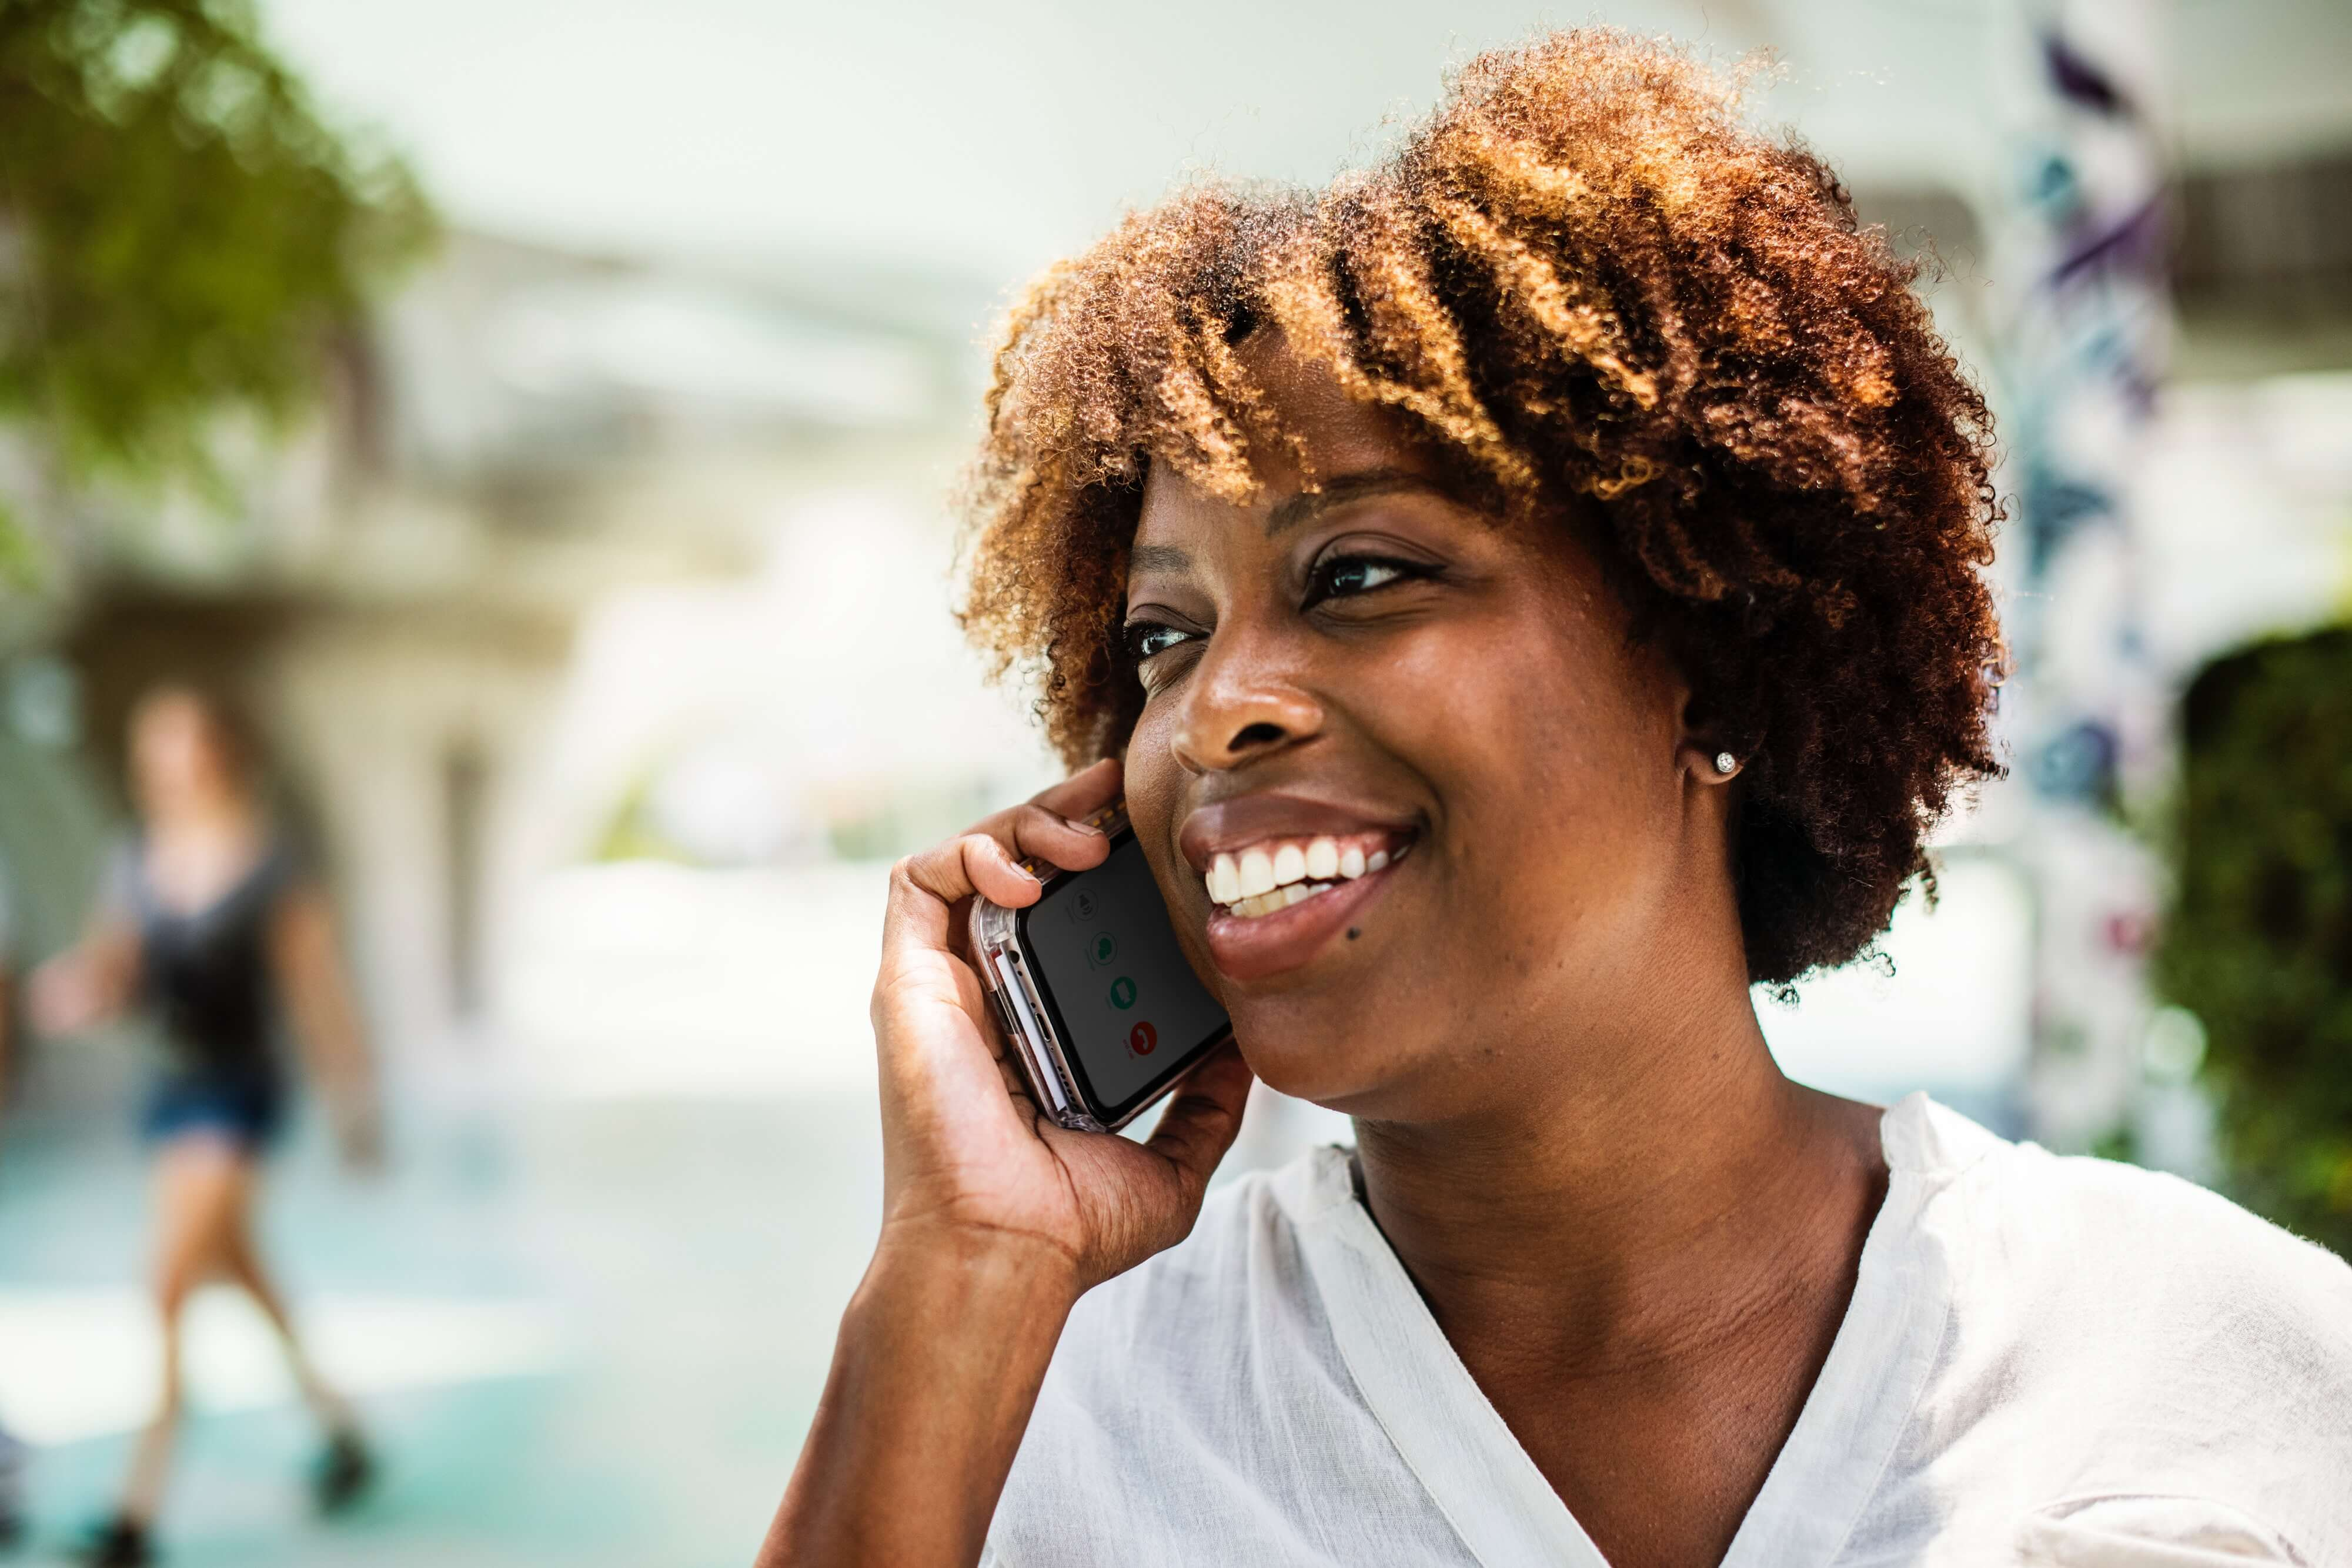 A woman on the phone, smiling.